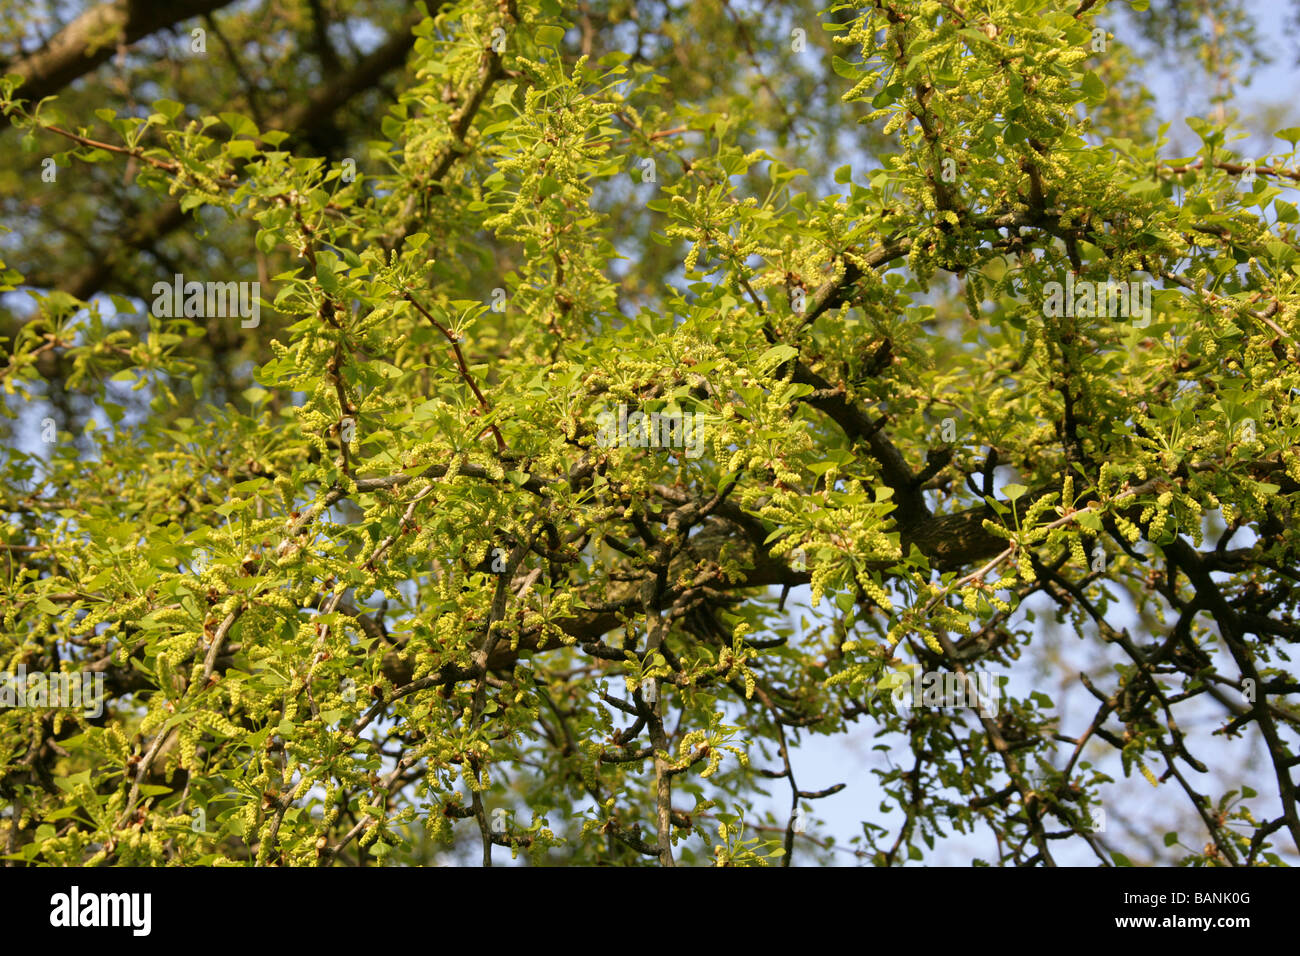 Flower Catkins of the Maidenhair Tree, Ginkgo biloba, Ginkgoaceae ...